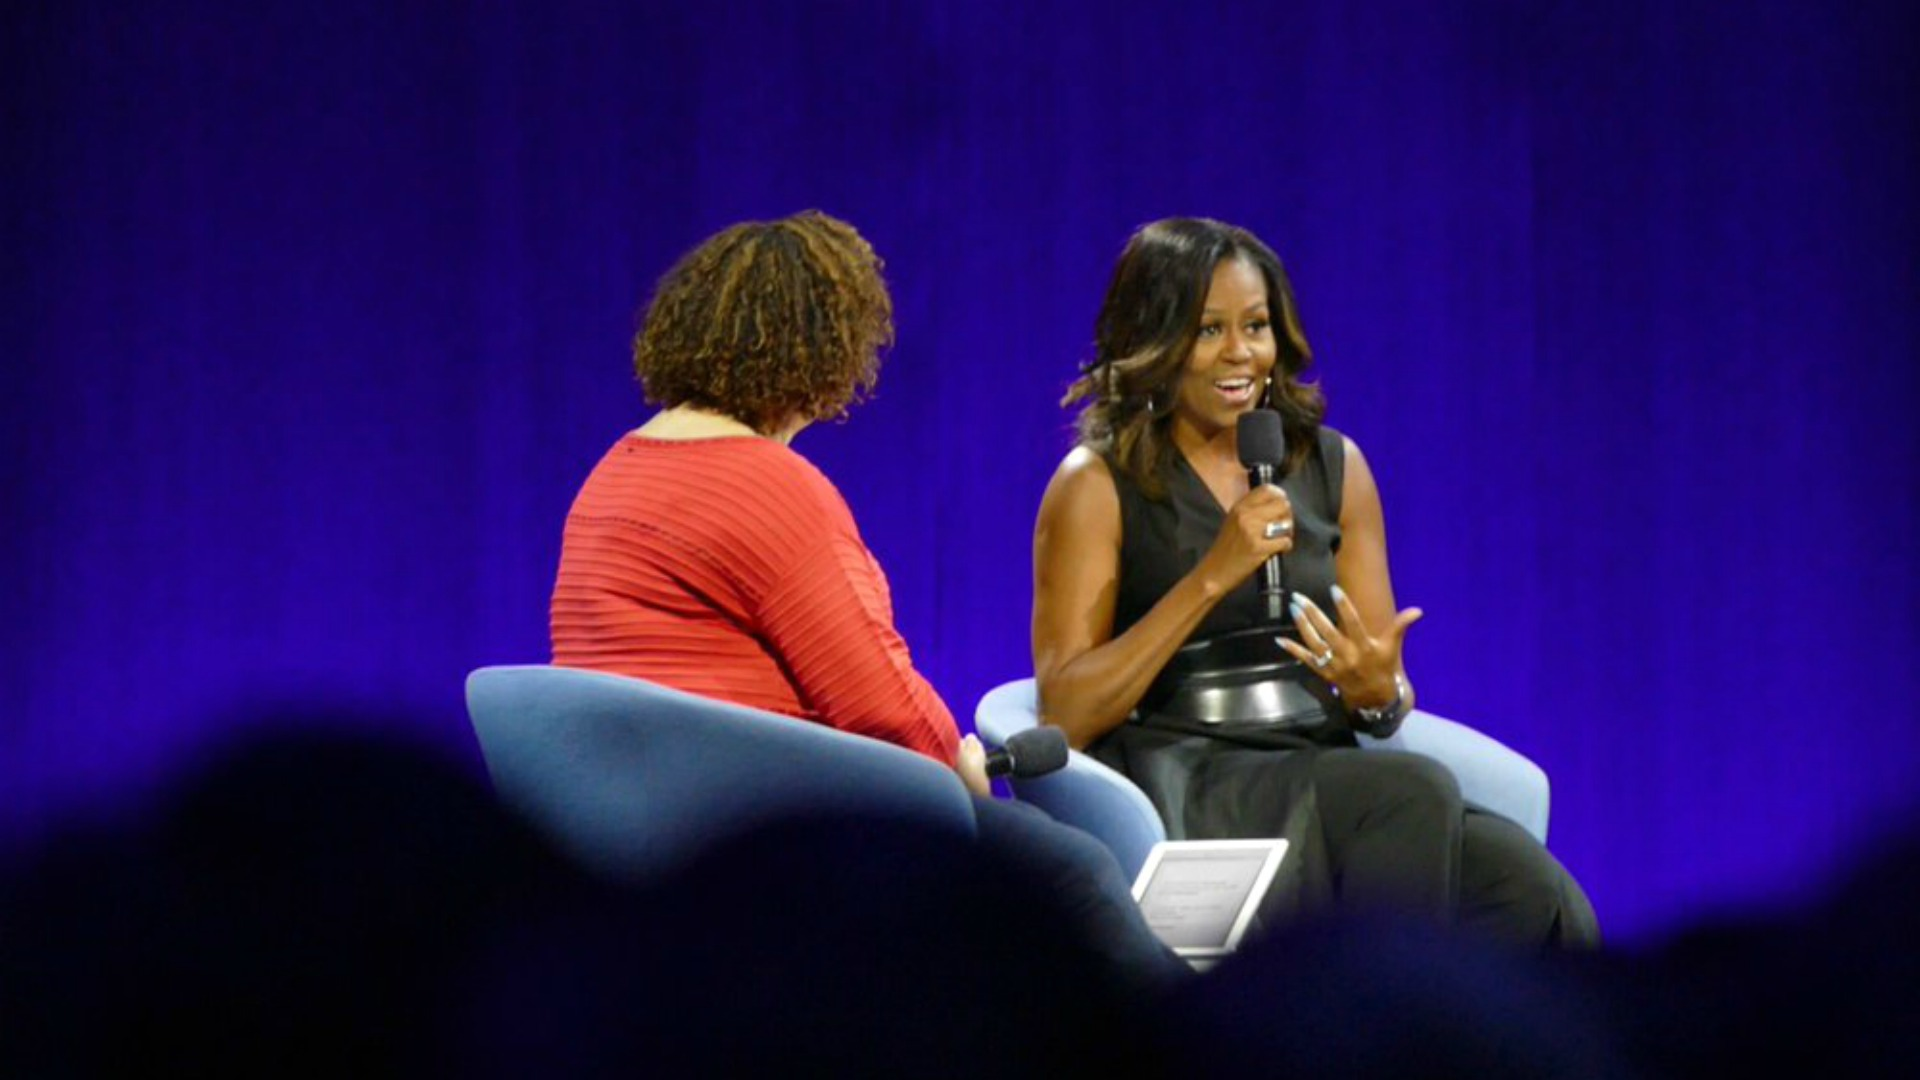 Michelle Obama speaks at Apple's Worldwide Developers Conference. (June 6, 2017)